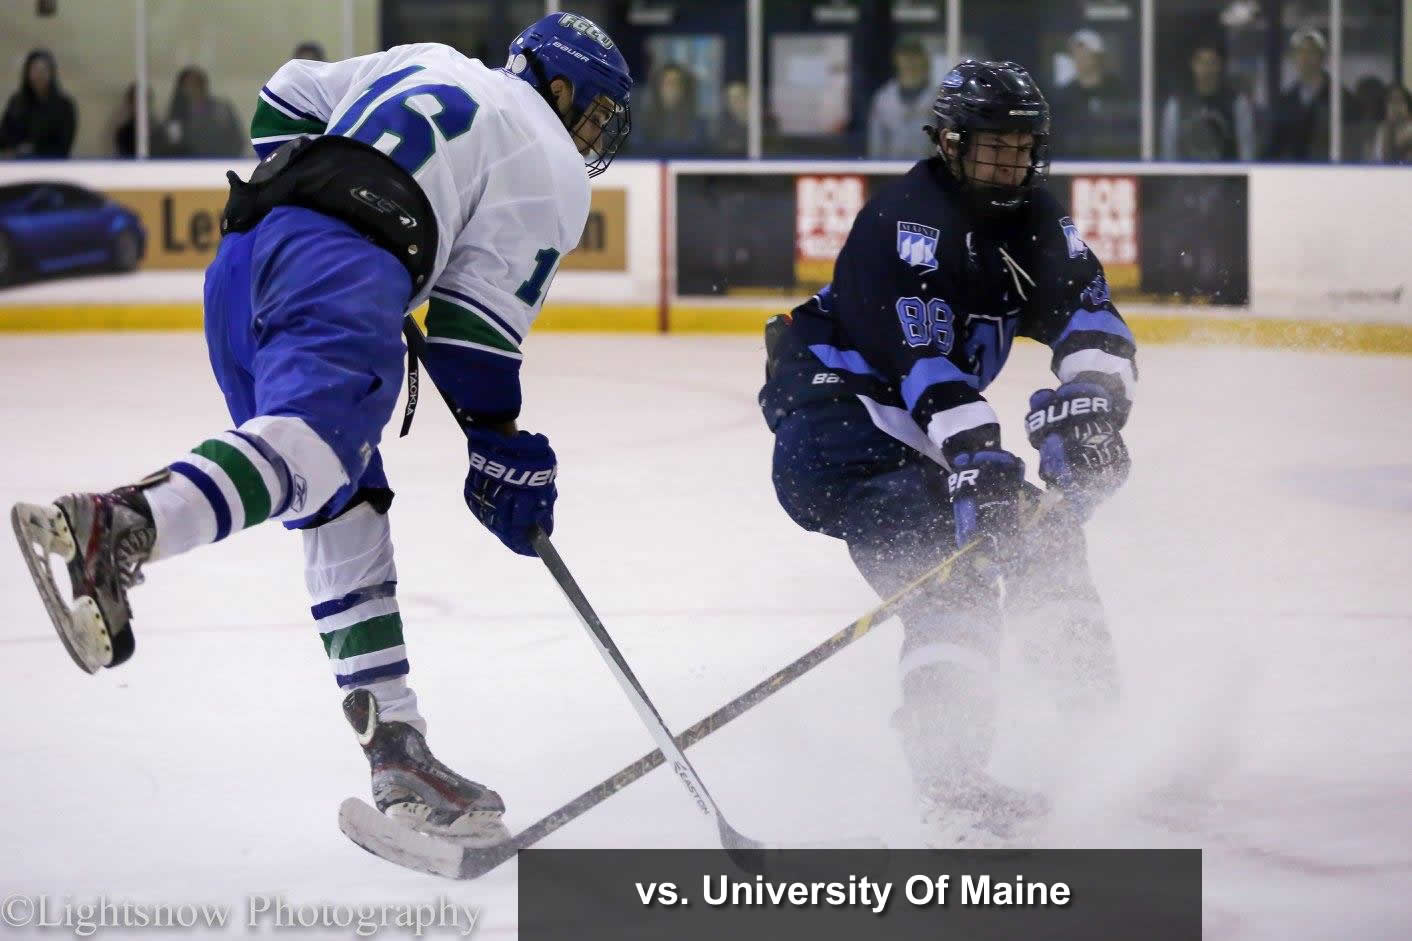 Vs. University Of Maine